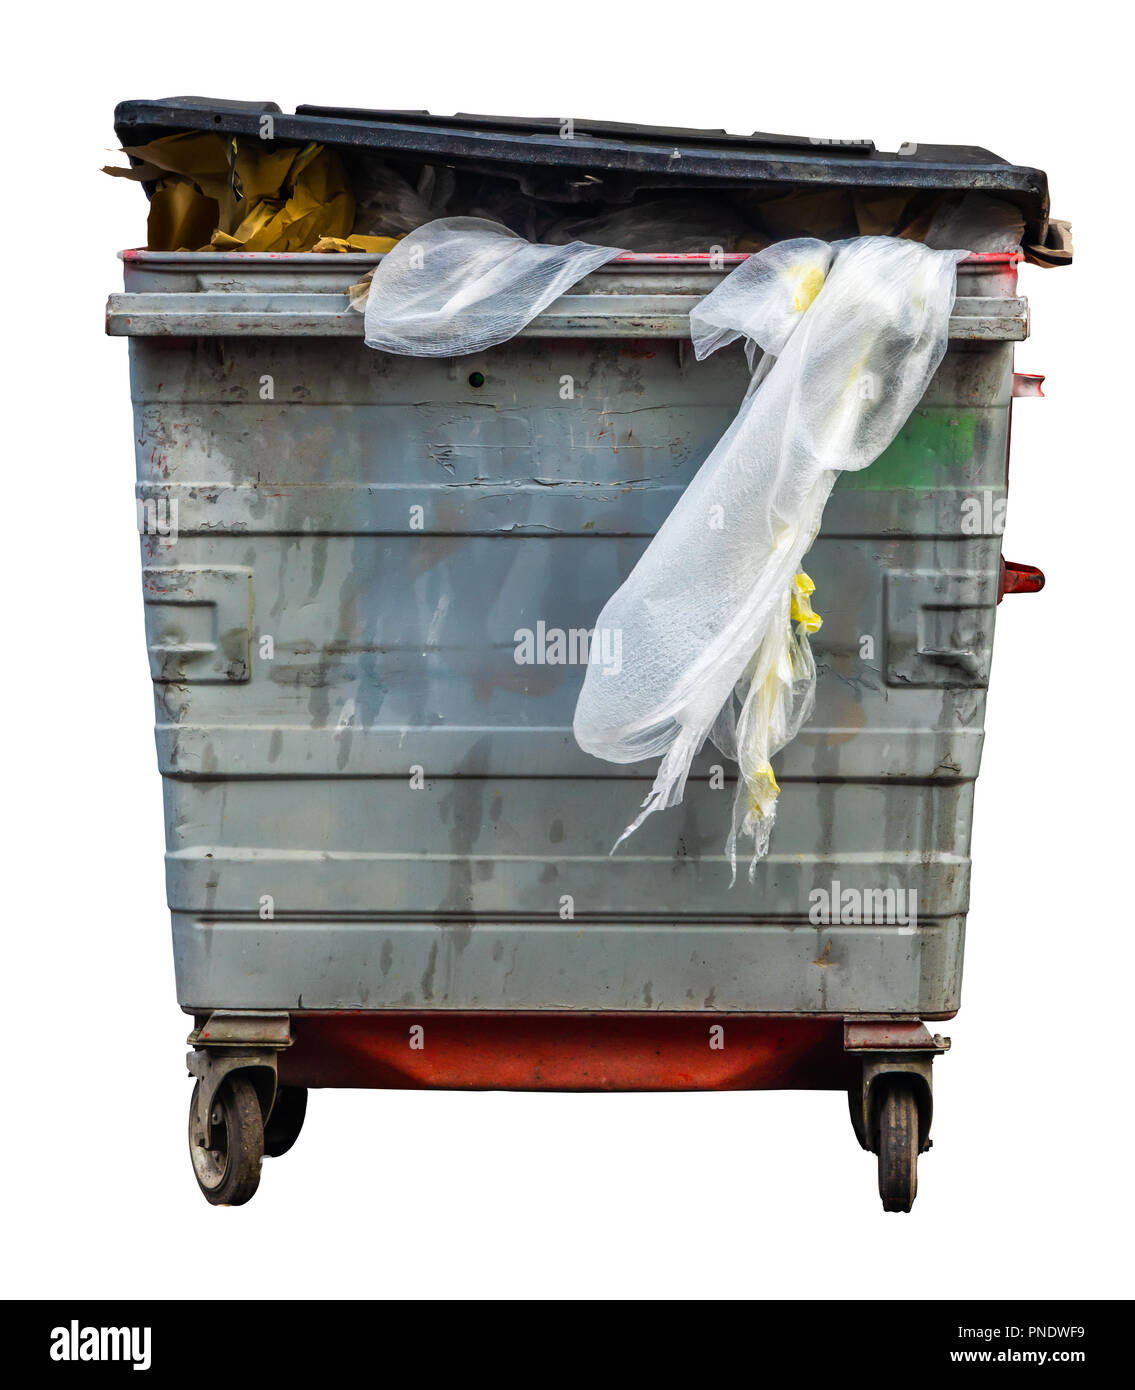 Isolated Grungy Wheelie Recycling Or Trash Can (Bin) On A White Background - Stock Image